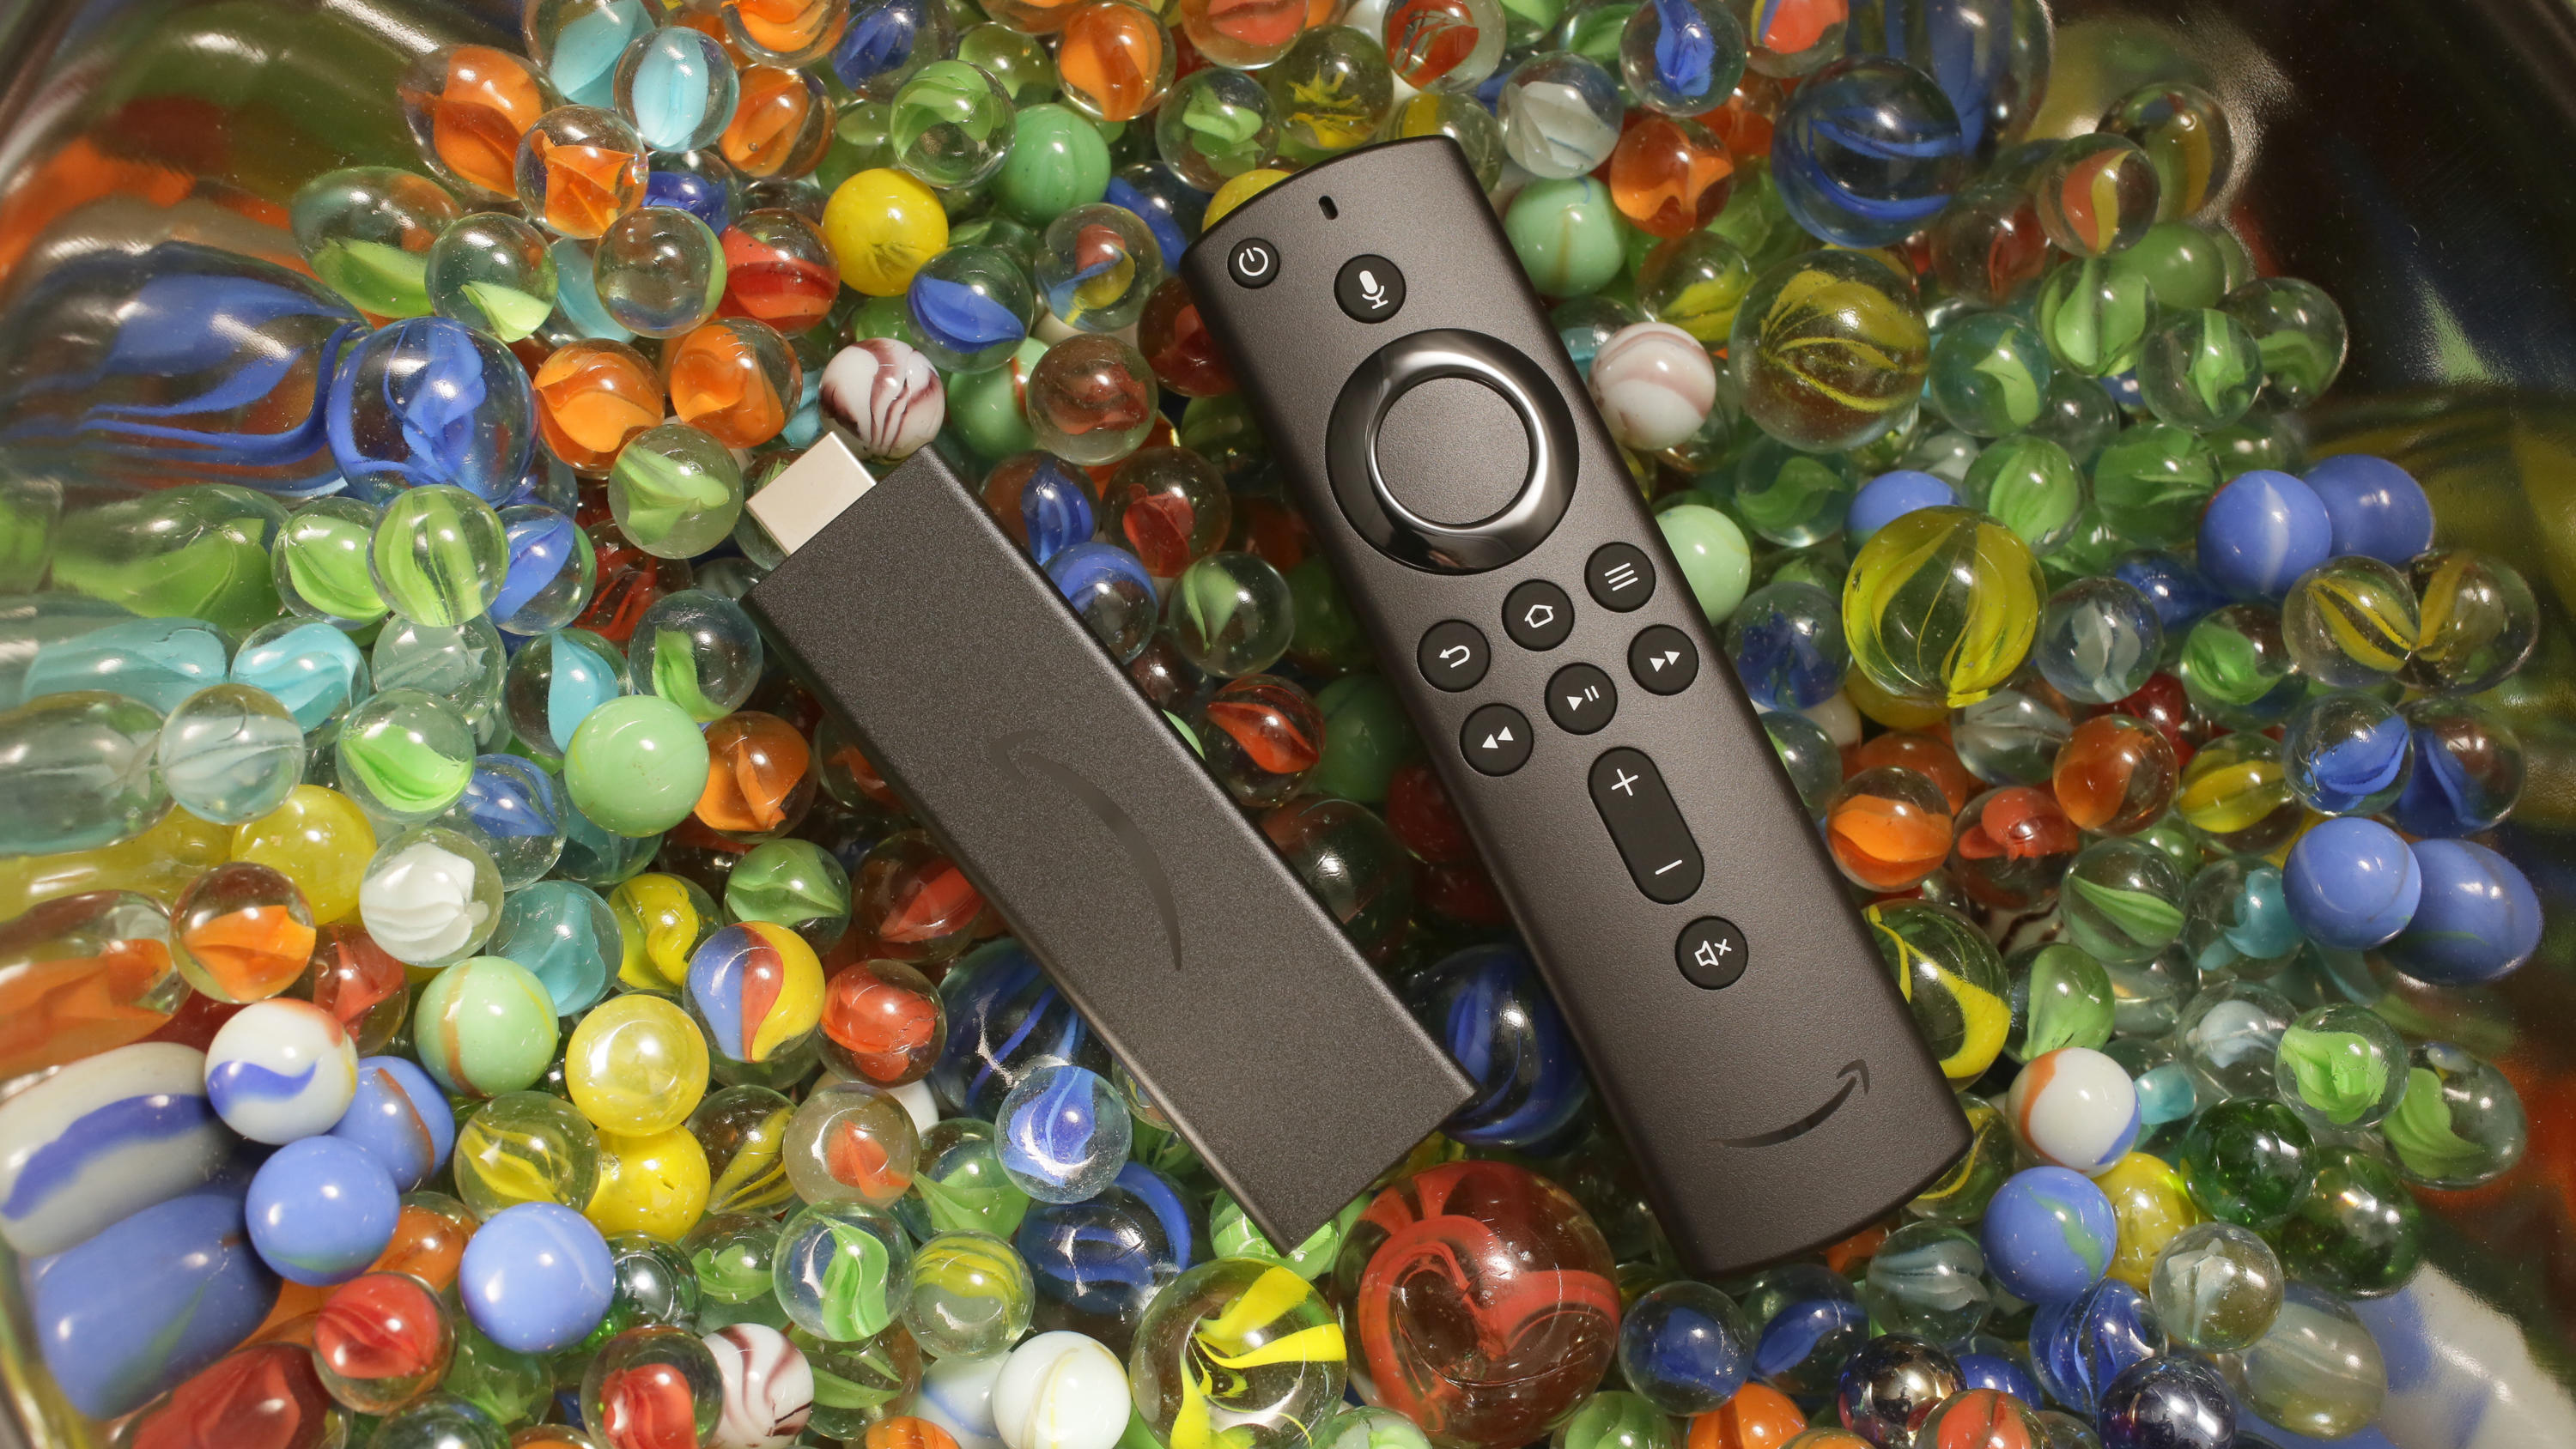 You can get a Fire TV Stick 4K for just  right now (Update: Expired)